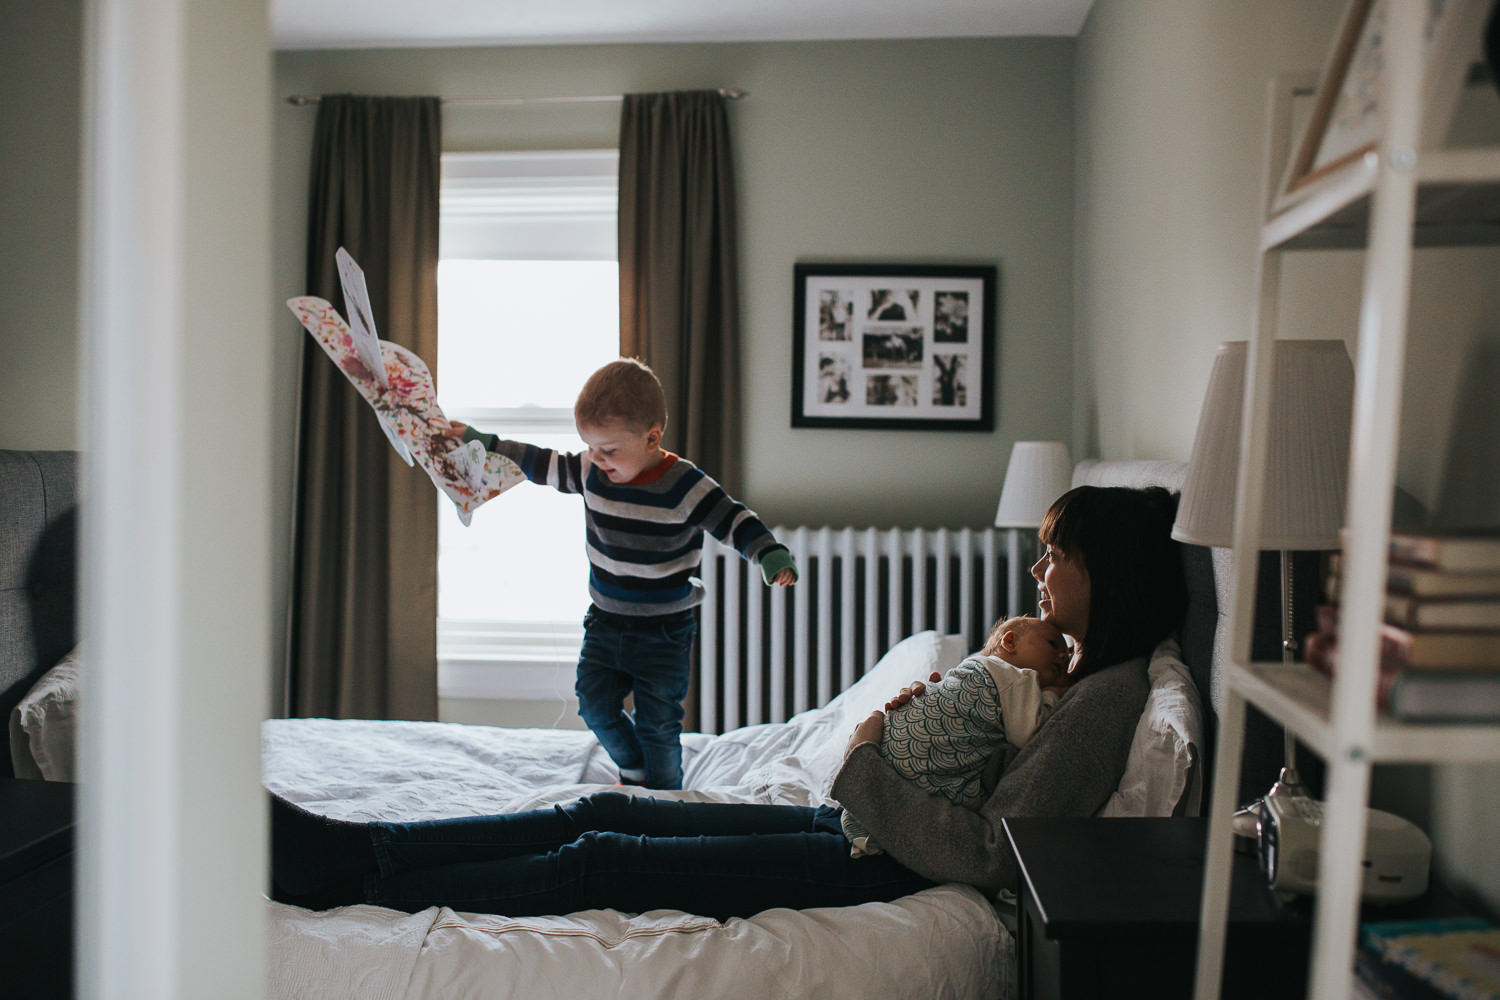 mom sitting on master bed holding baby girl, while toddler son stands on bed flying toy airplane - Markham lifestyle photography